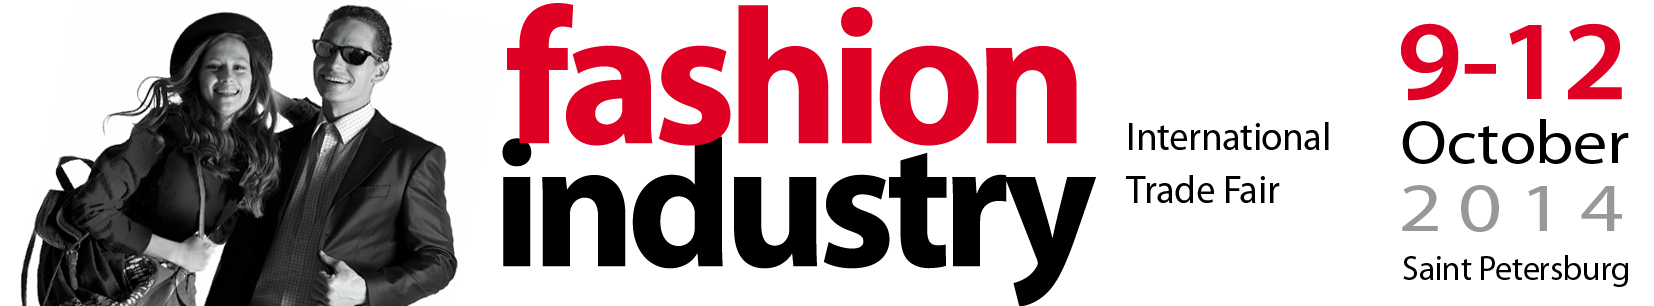 FASHION INDUSTRY (AUTUMN - 2014)